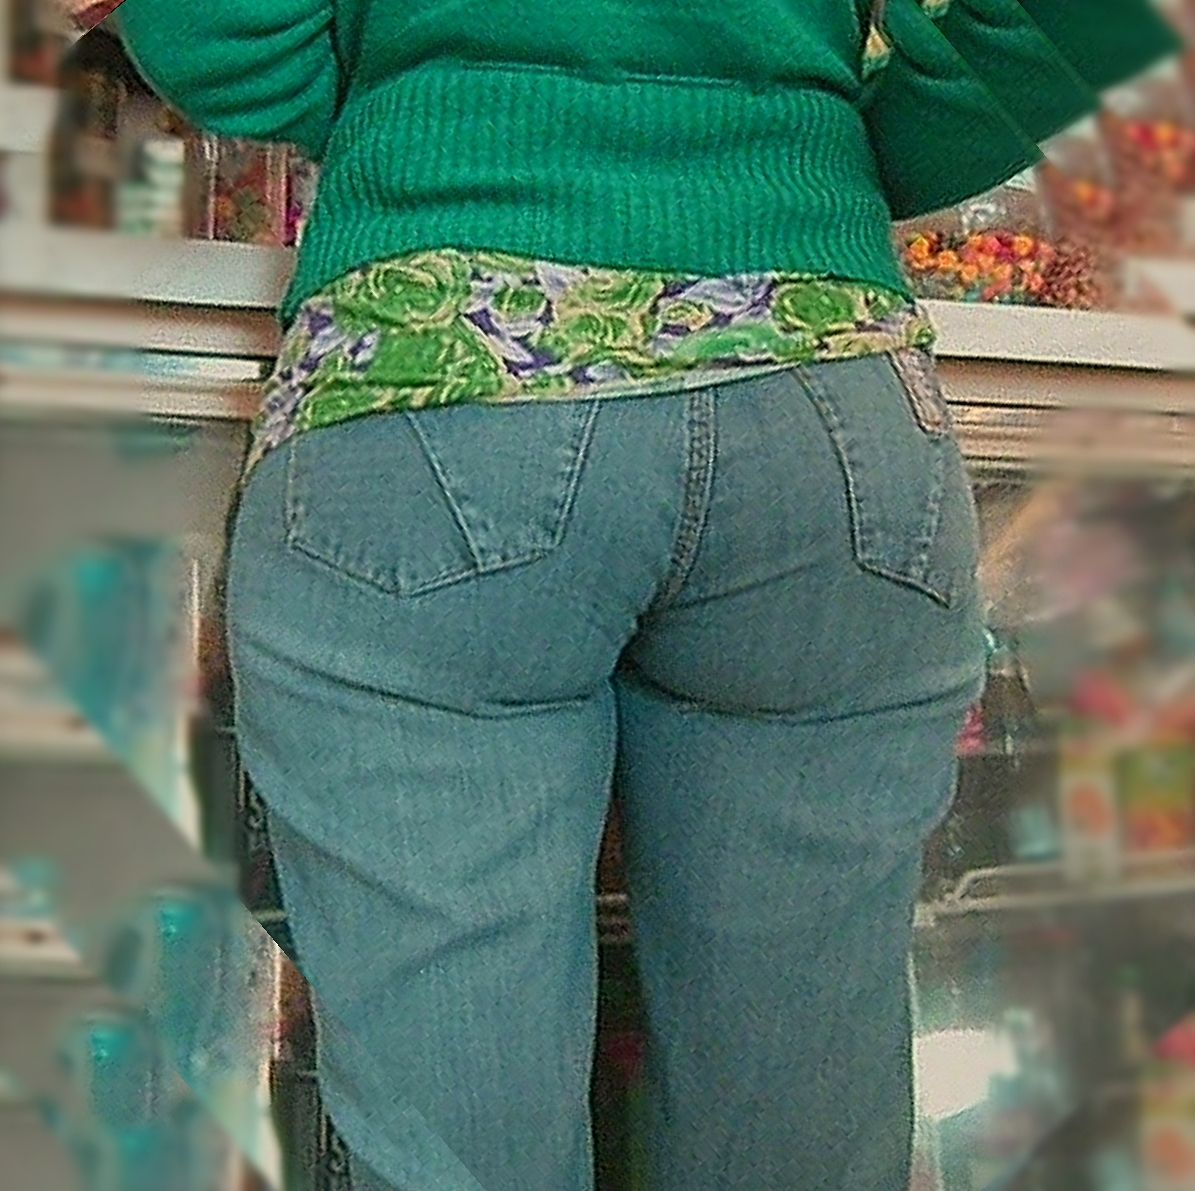 Pawg milf tight jeans vpl